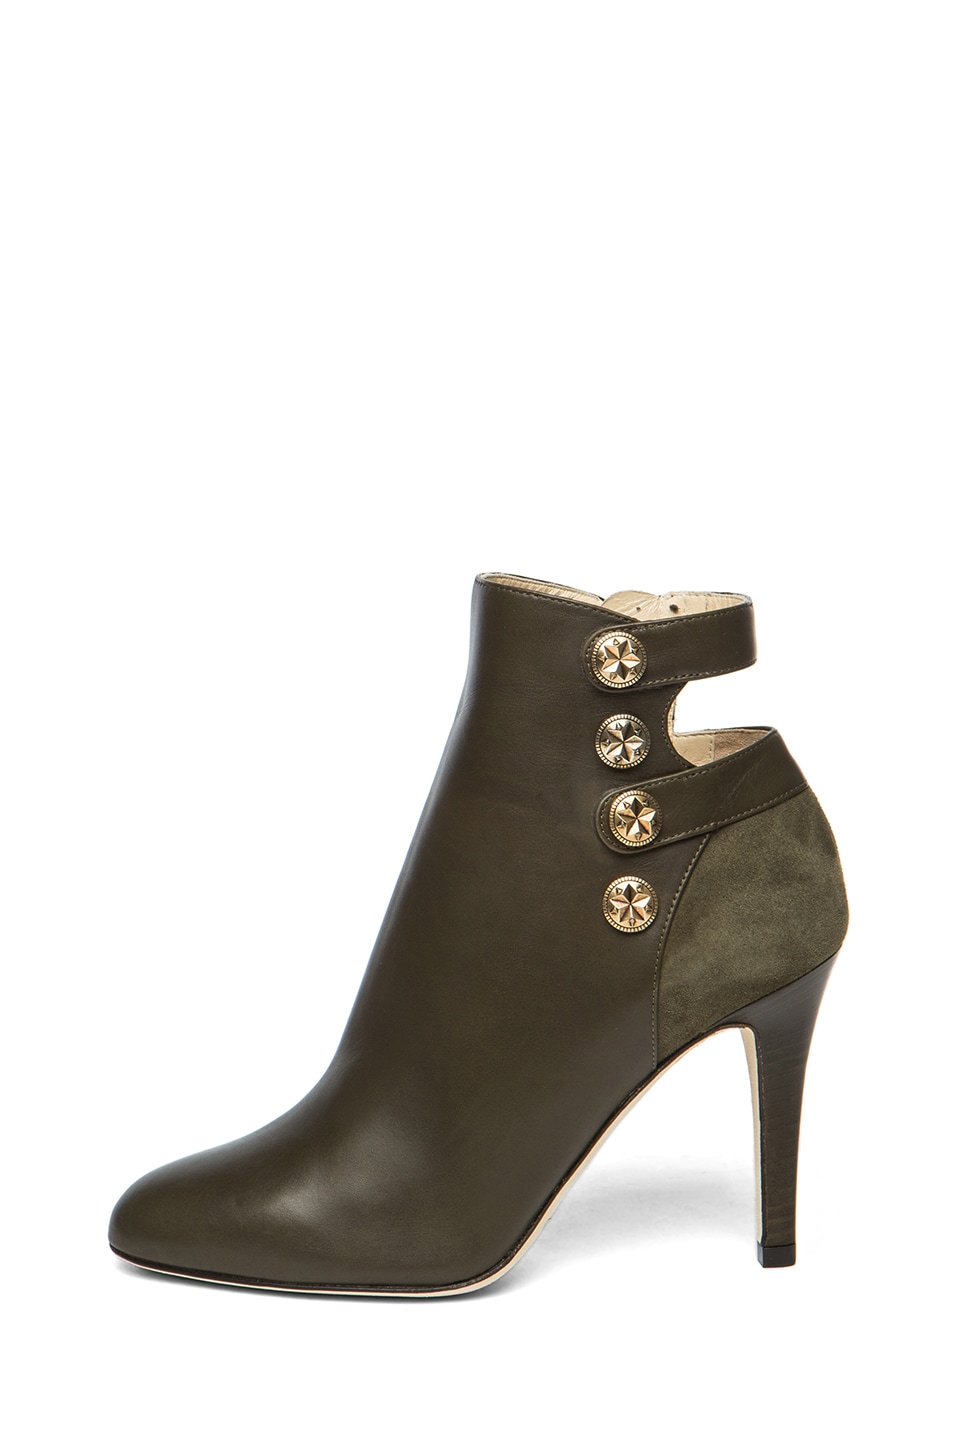 Image 1 of Jimmy Choo Troop Leather Booties in Military